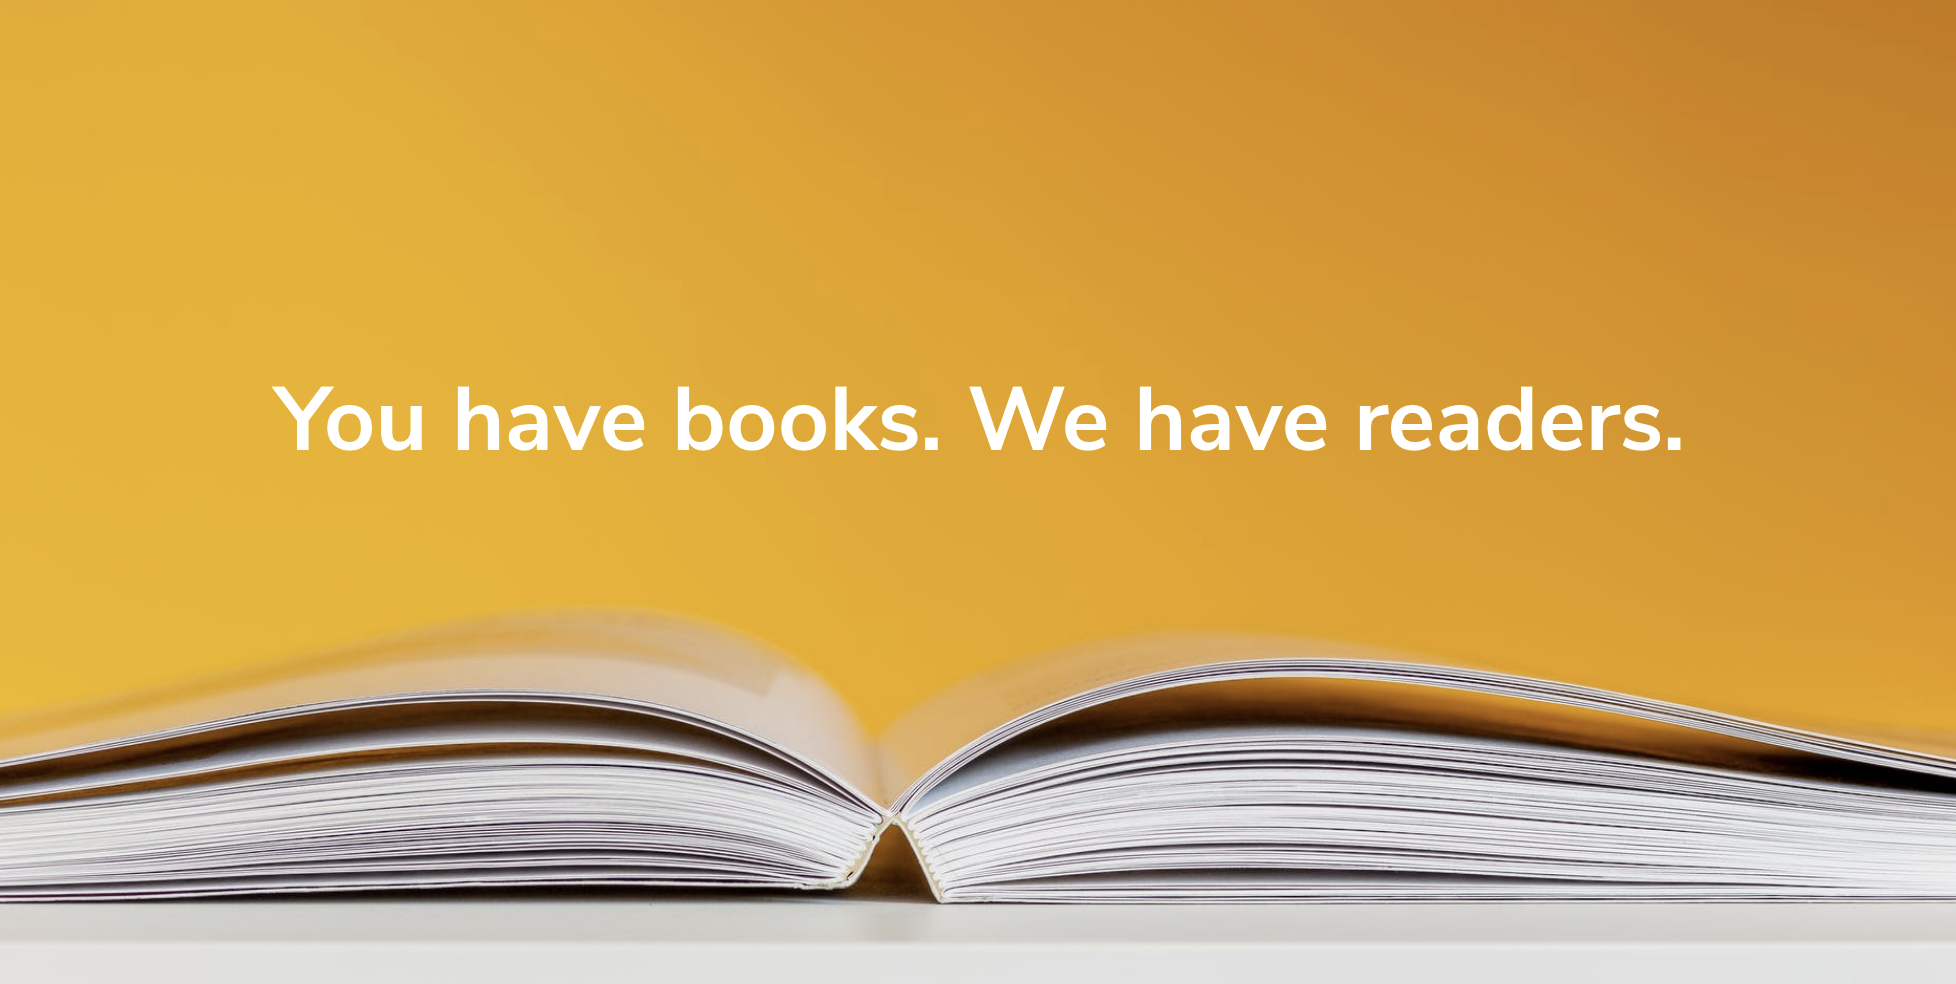 You have books. We have readers.